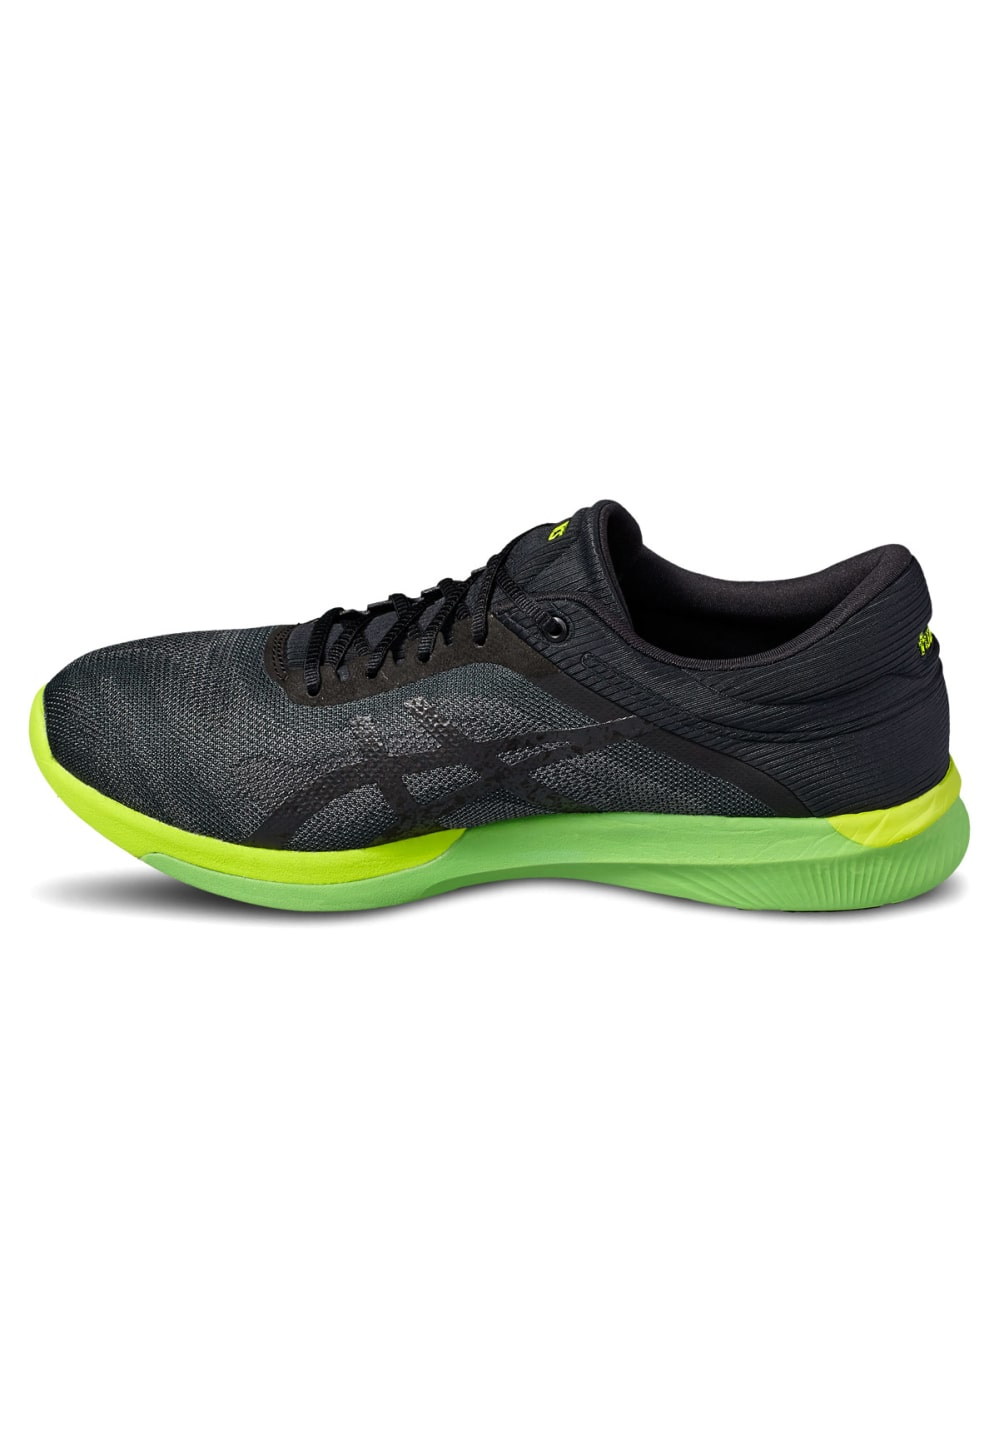 Rush Homme Chaussures Running Noir Asics Fuzex Pour 7vY6gbfy